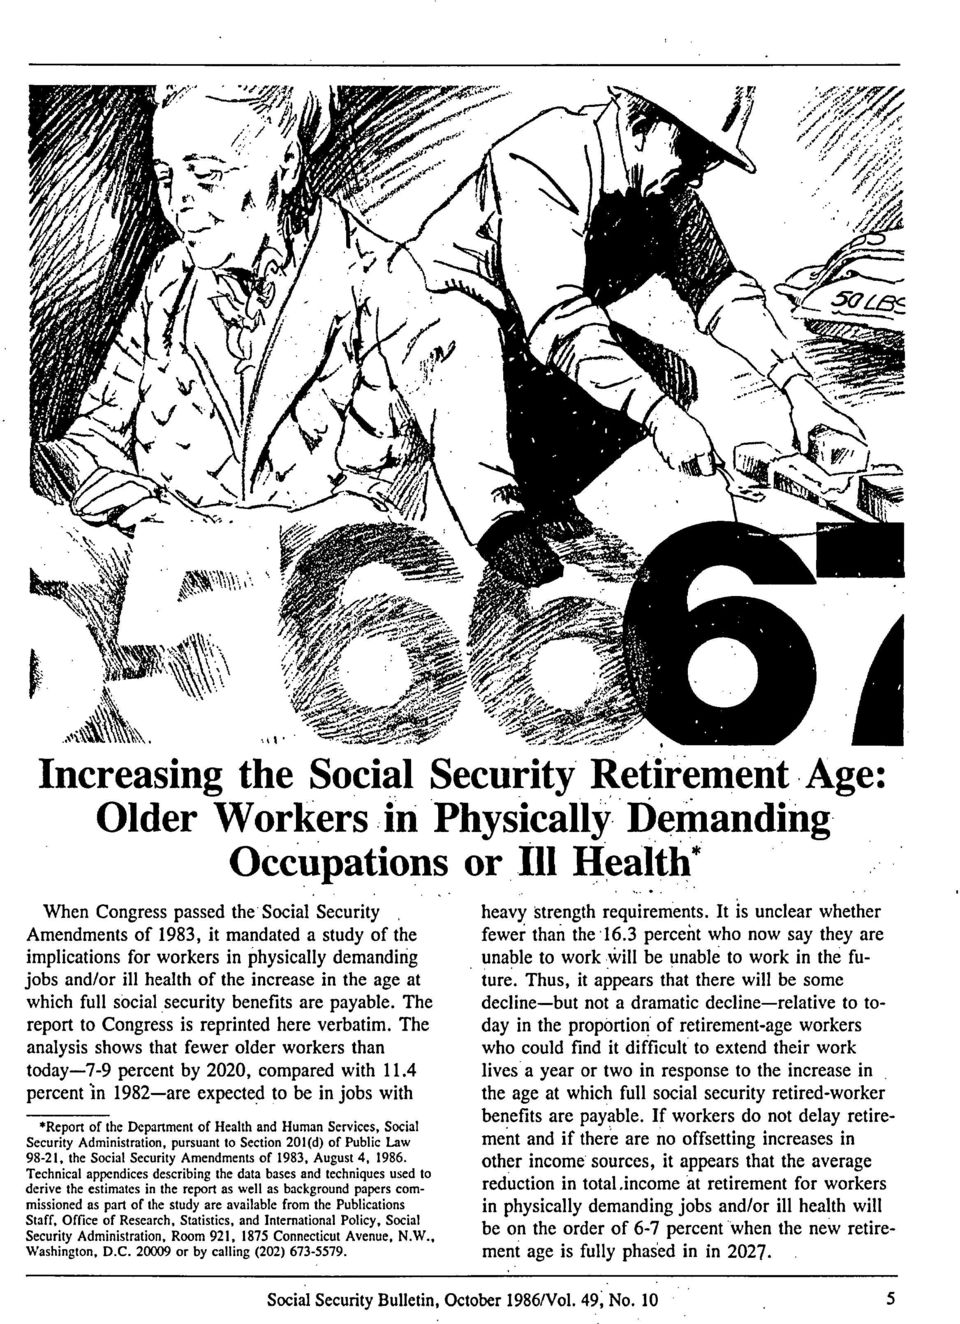 security benefits are payable. The report to Congress is reprinted here verbatim. The analysis shows that fewer older workers than today-7-9 percent by 2020, compared with 11.